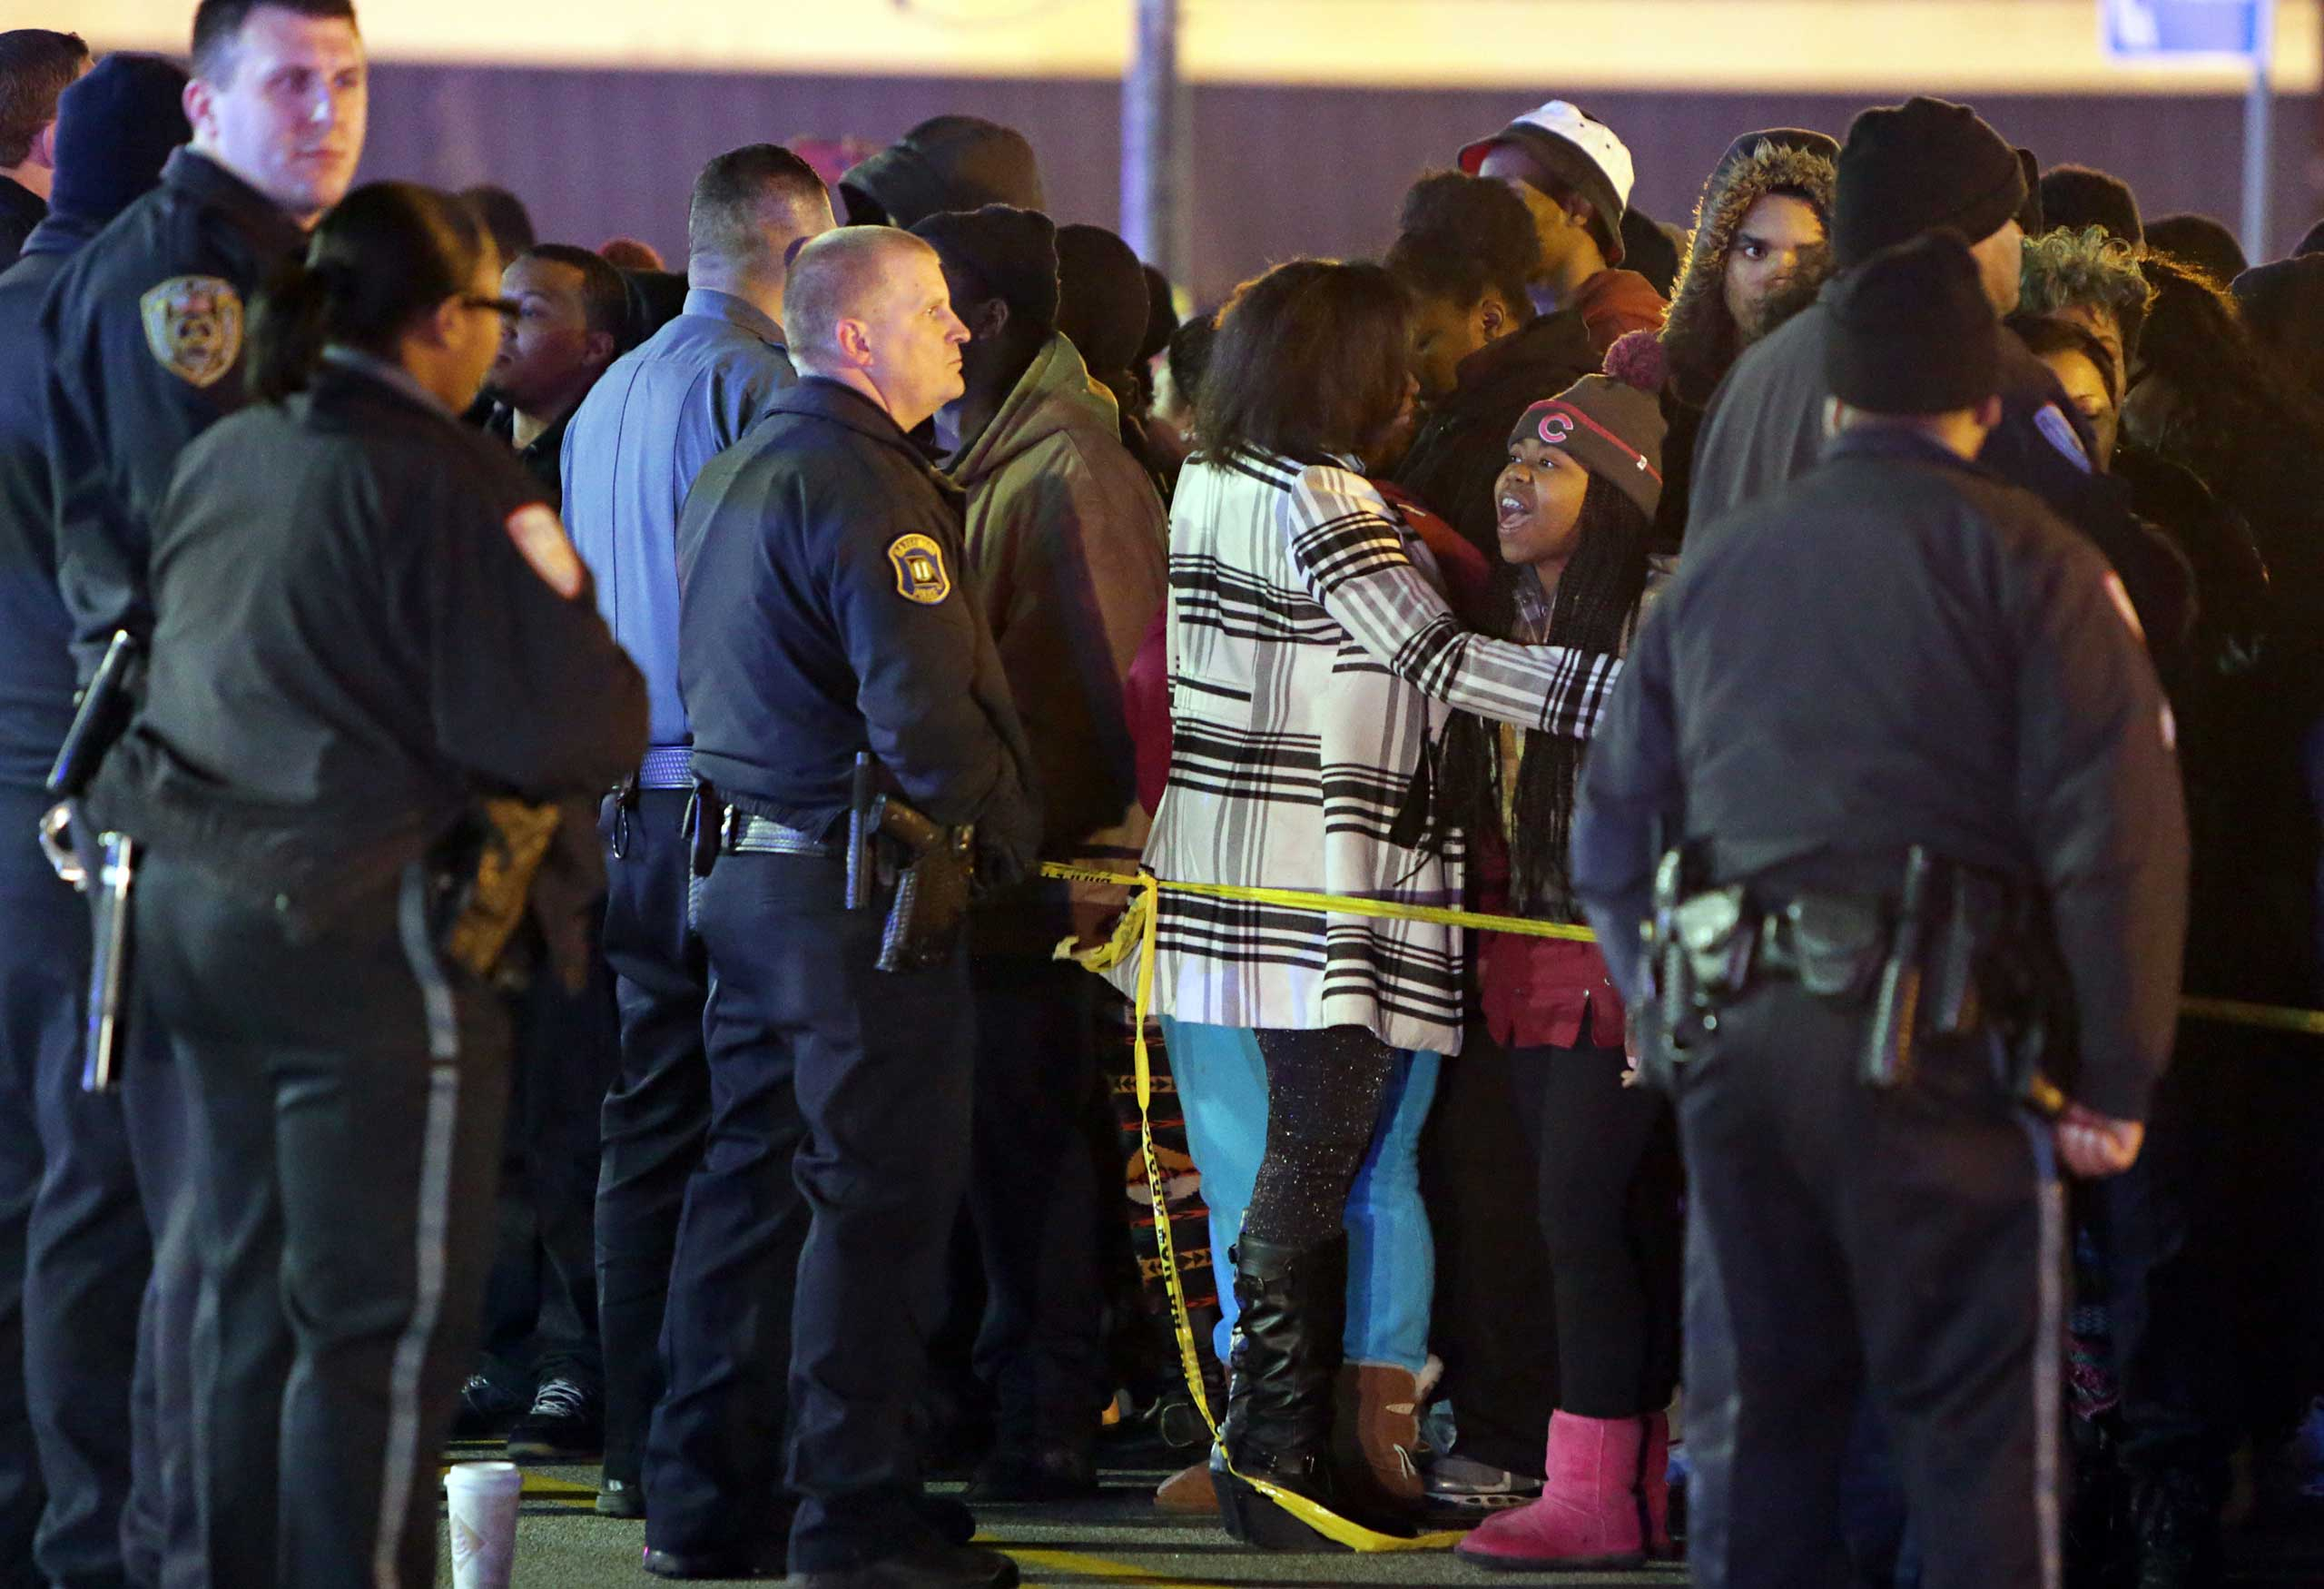 Police hold back a crowd at the perimeter of a scene on Dec. 24, 2014, following a shooting at a gas station in Berkeley, Mo.